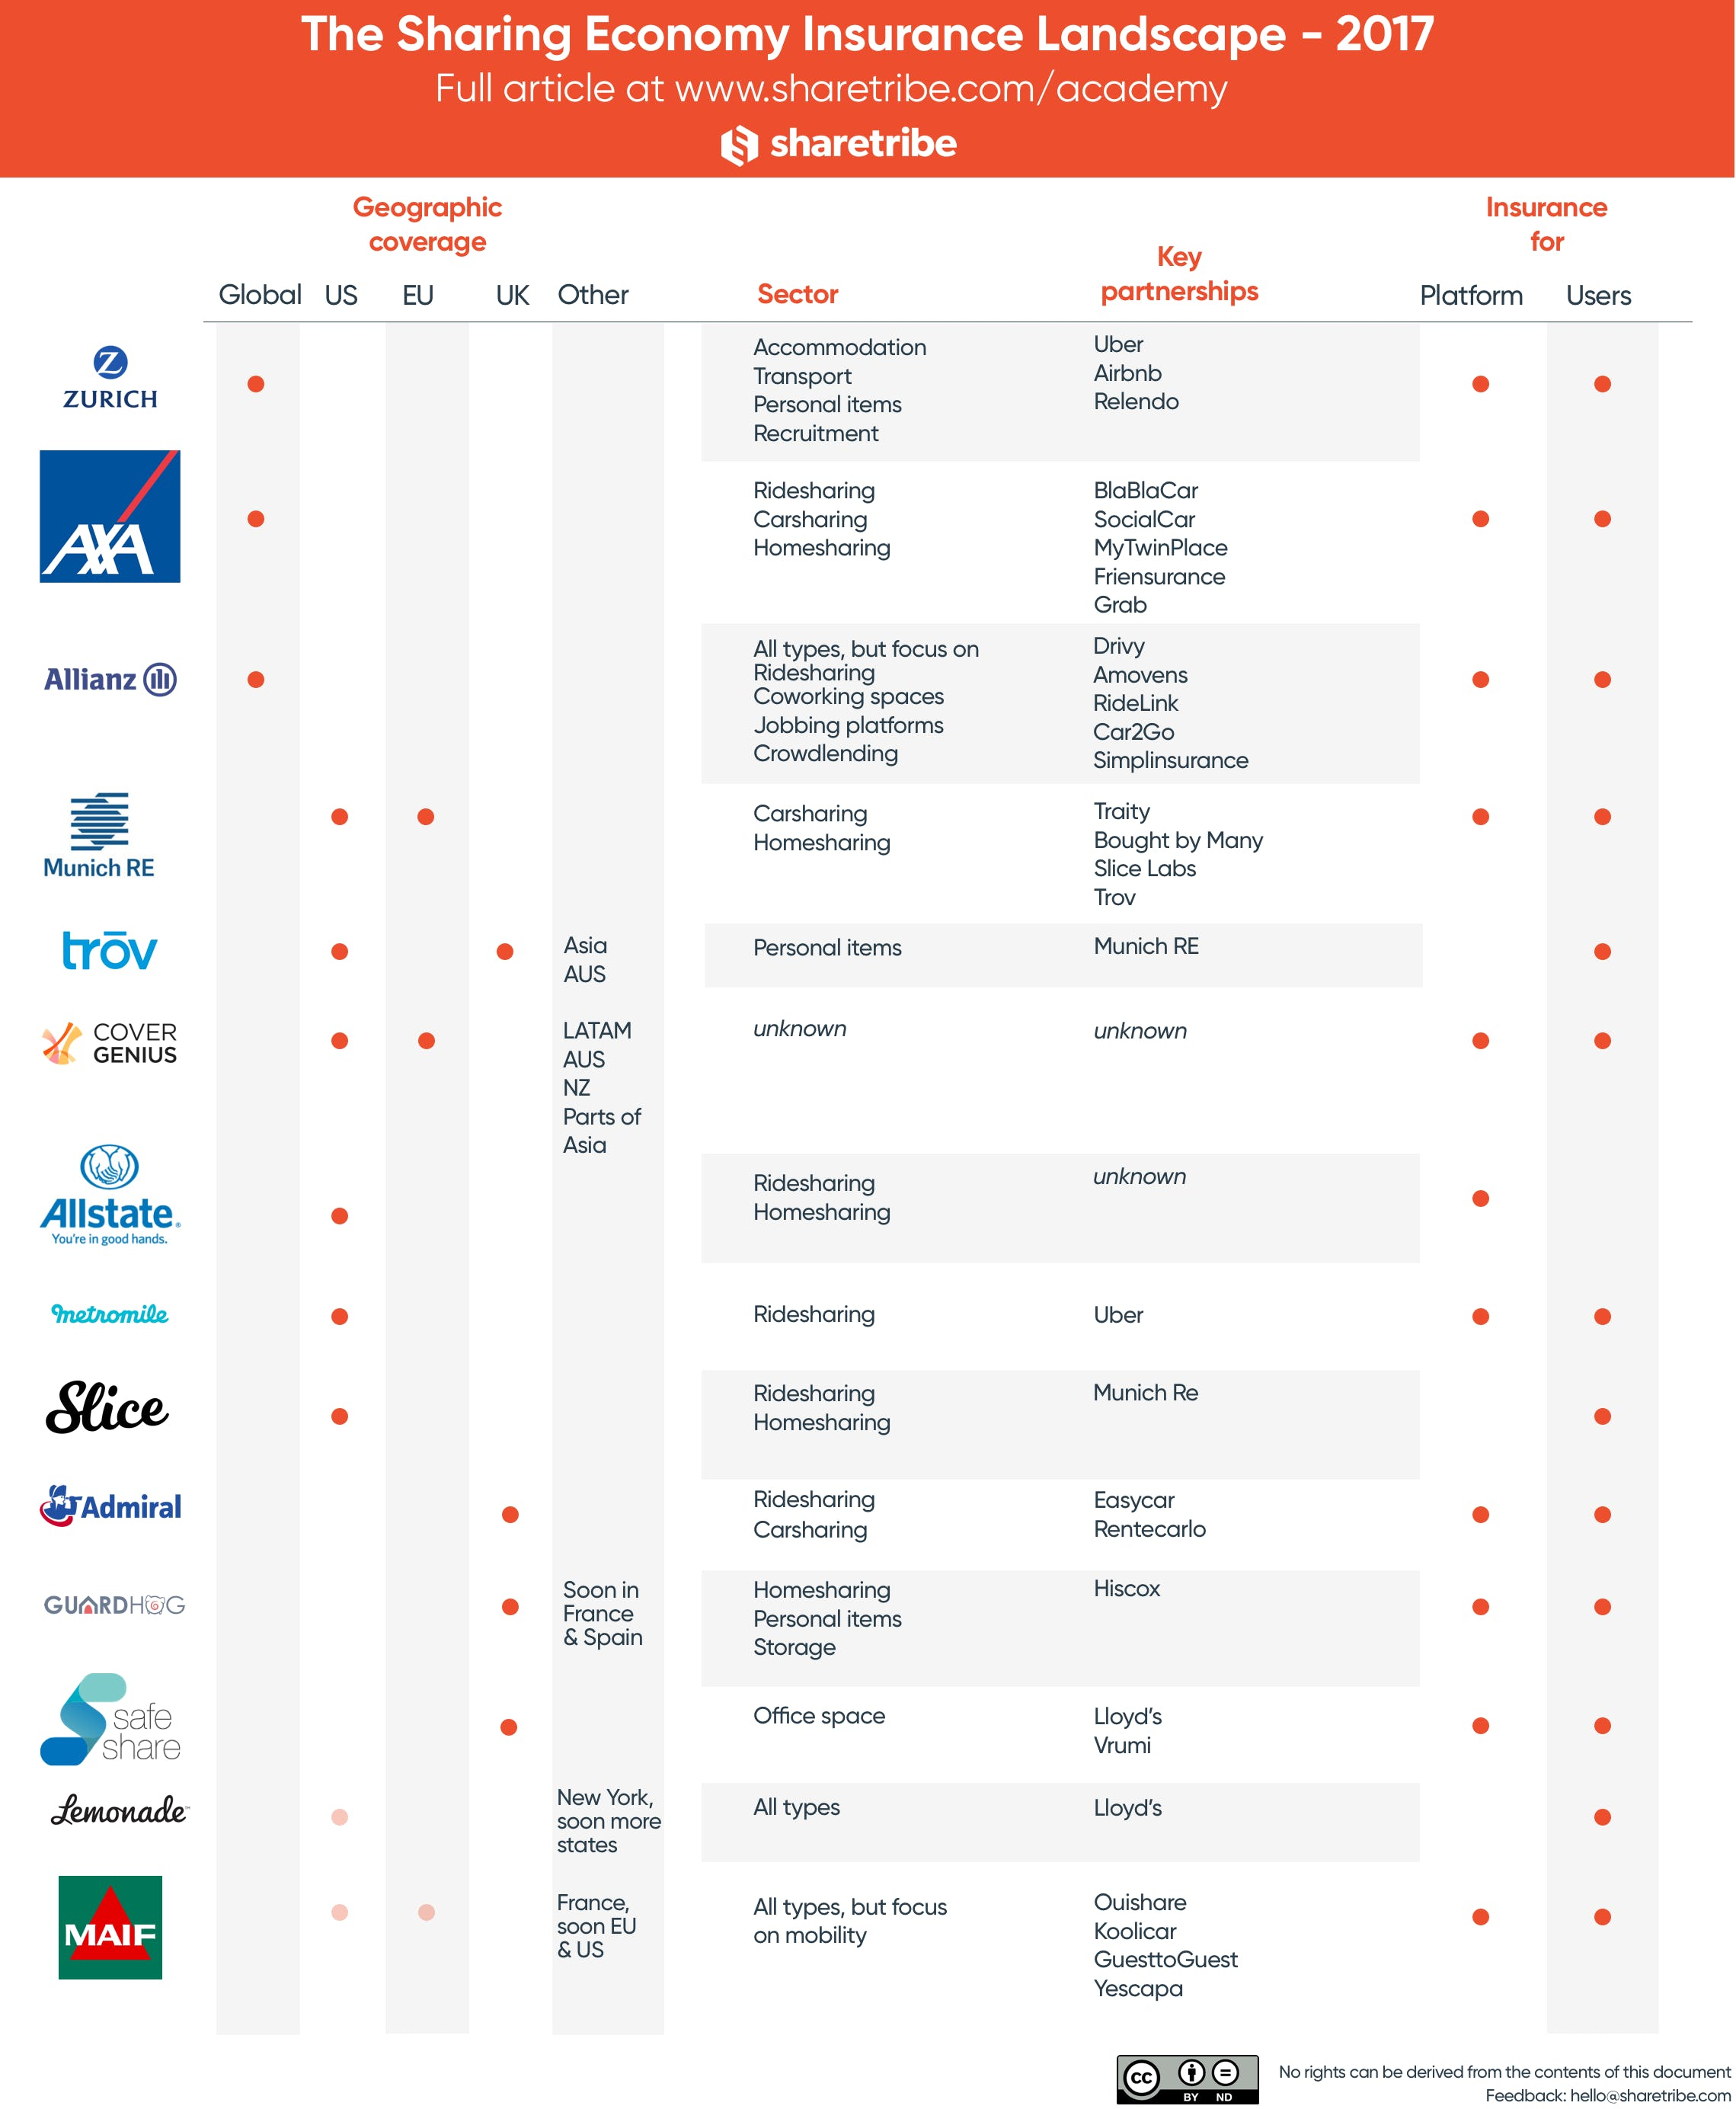 The Sharing Economy Insurance Landscape - Insurance for online marketplaces & peer-to-peer marketplaces